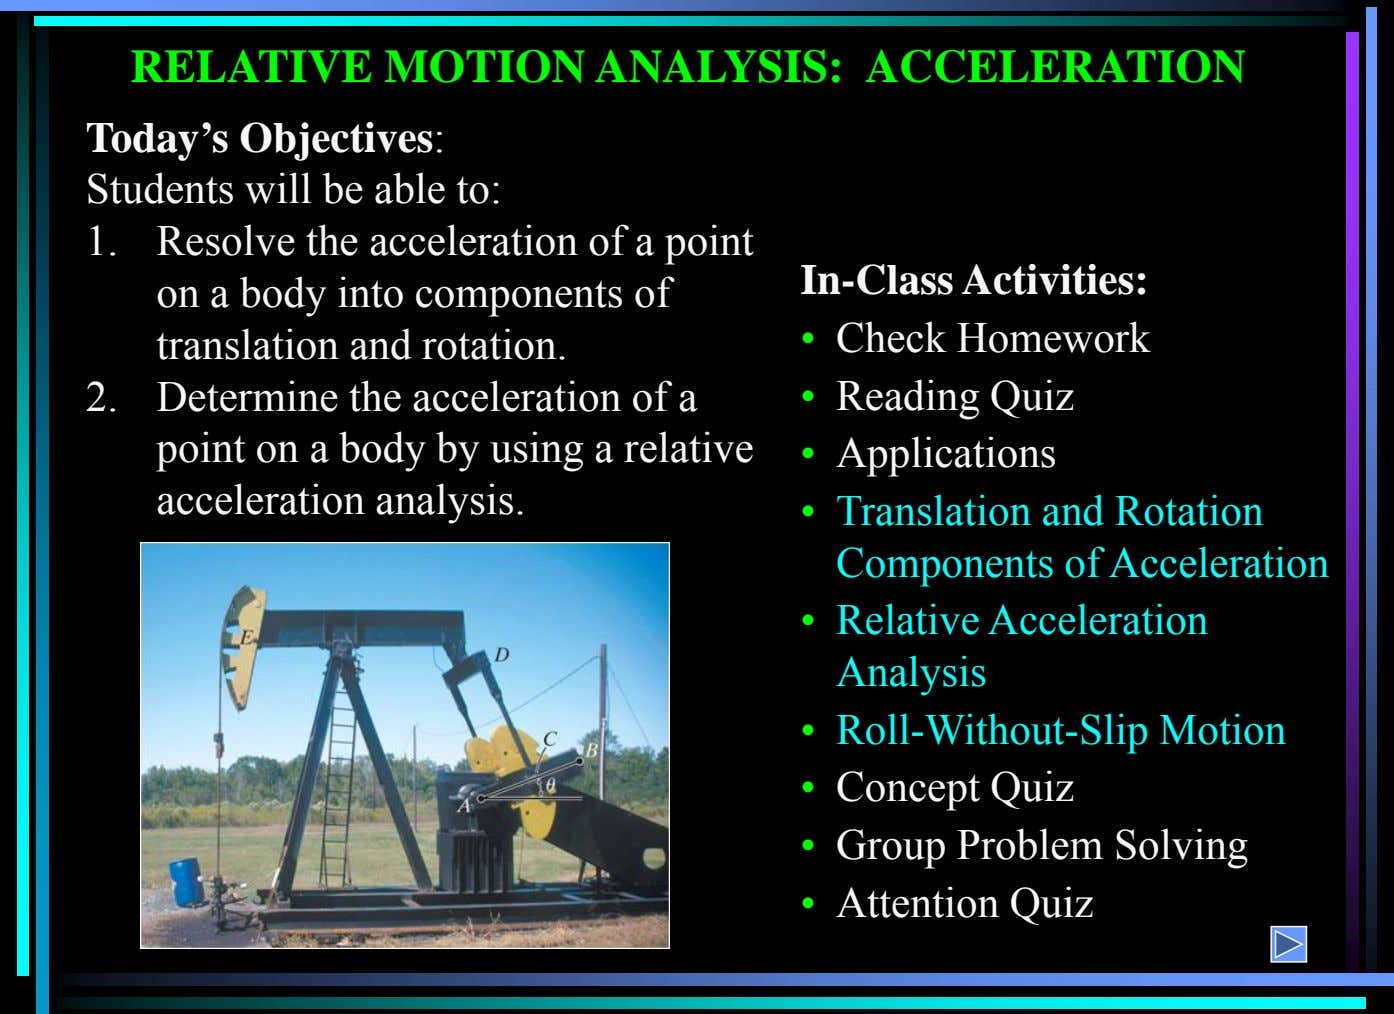 • Relative Acceleration Analysis • Roll-Without-Slip Motion • Concept Quiz • Group Problem Solving • Attention